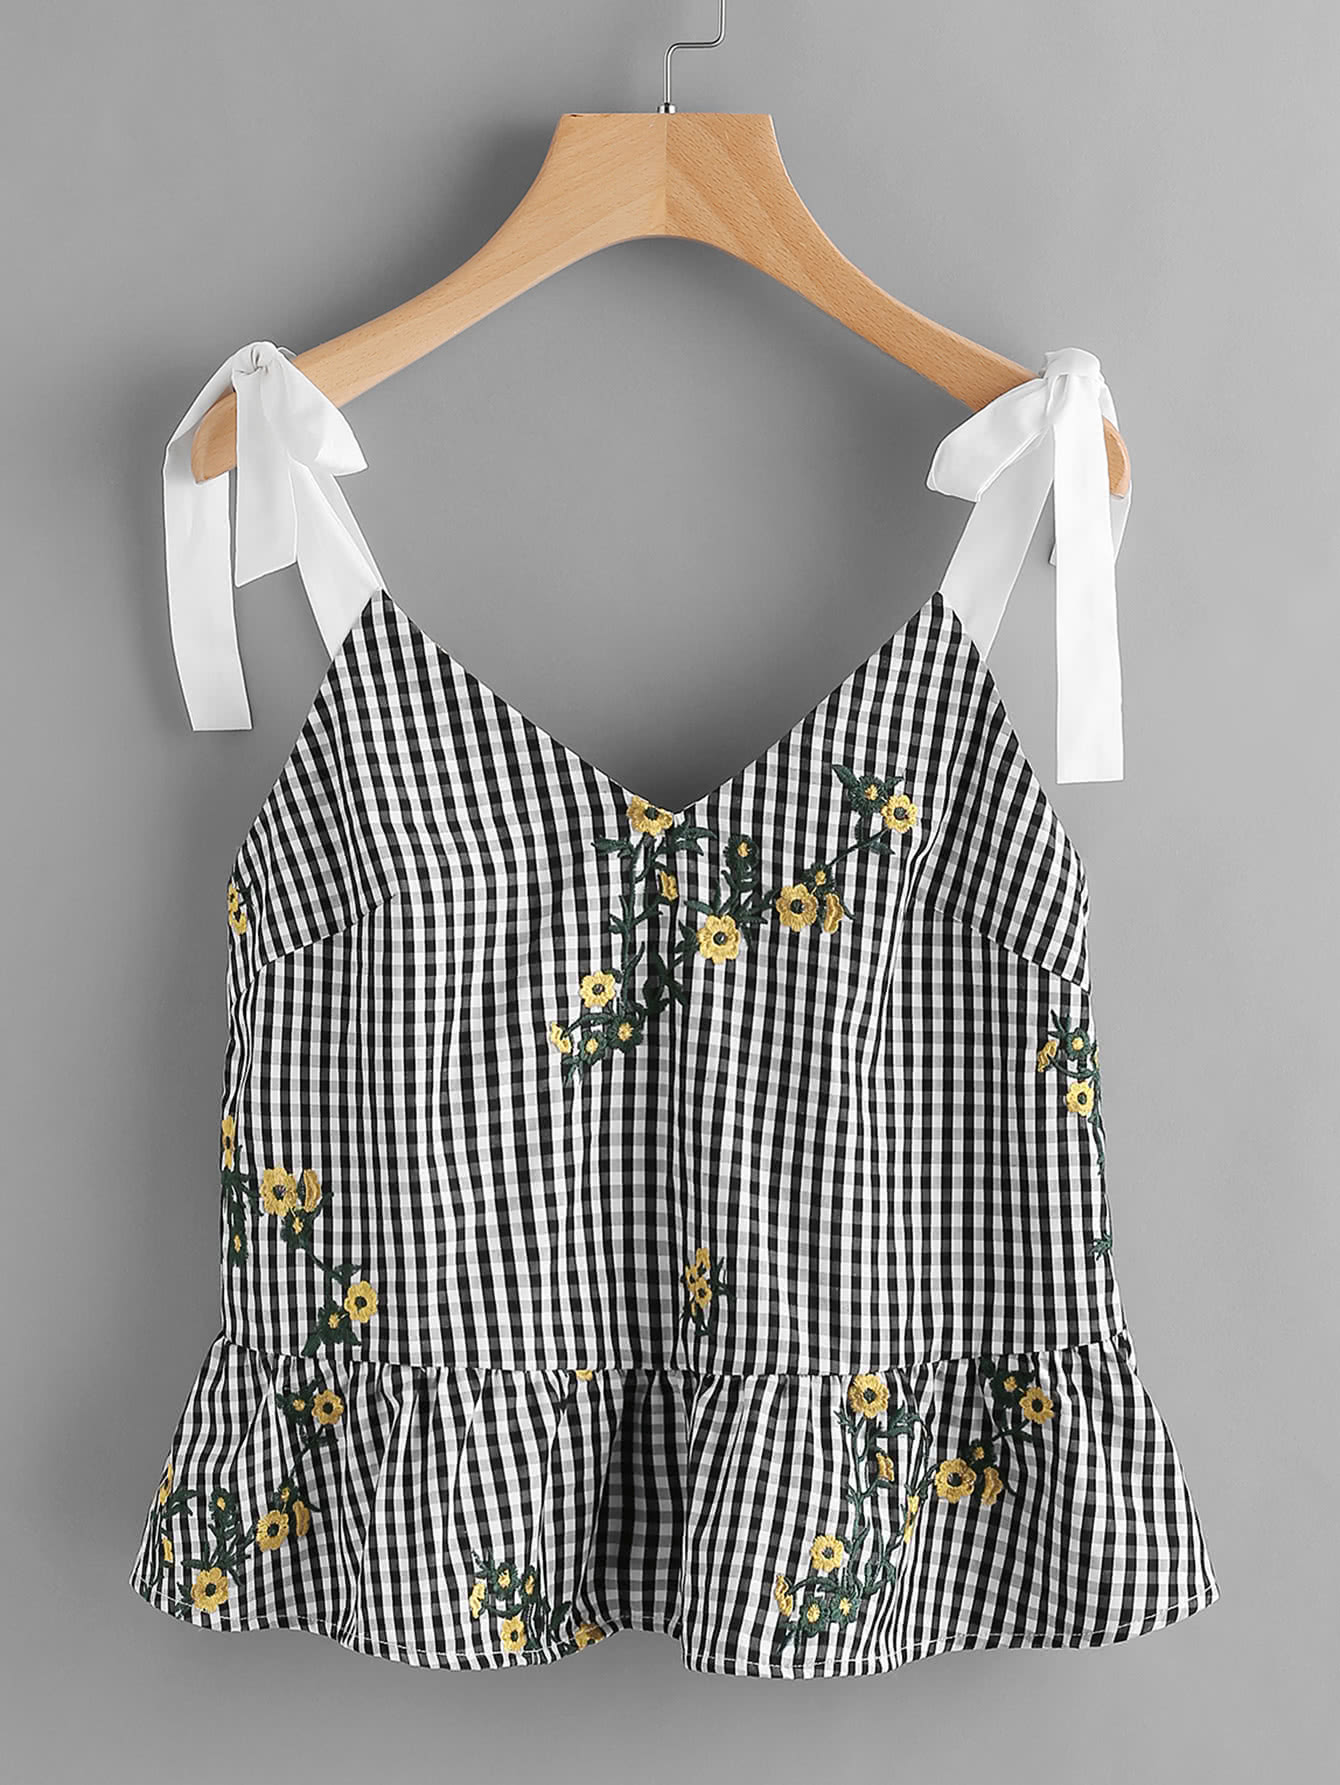 floral embroidered gingham strap top with white bow straps